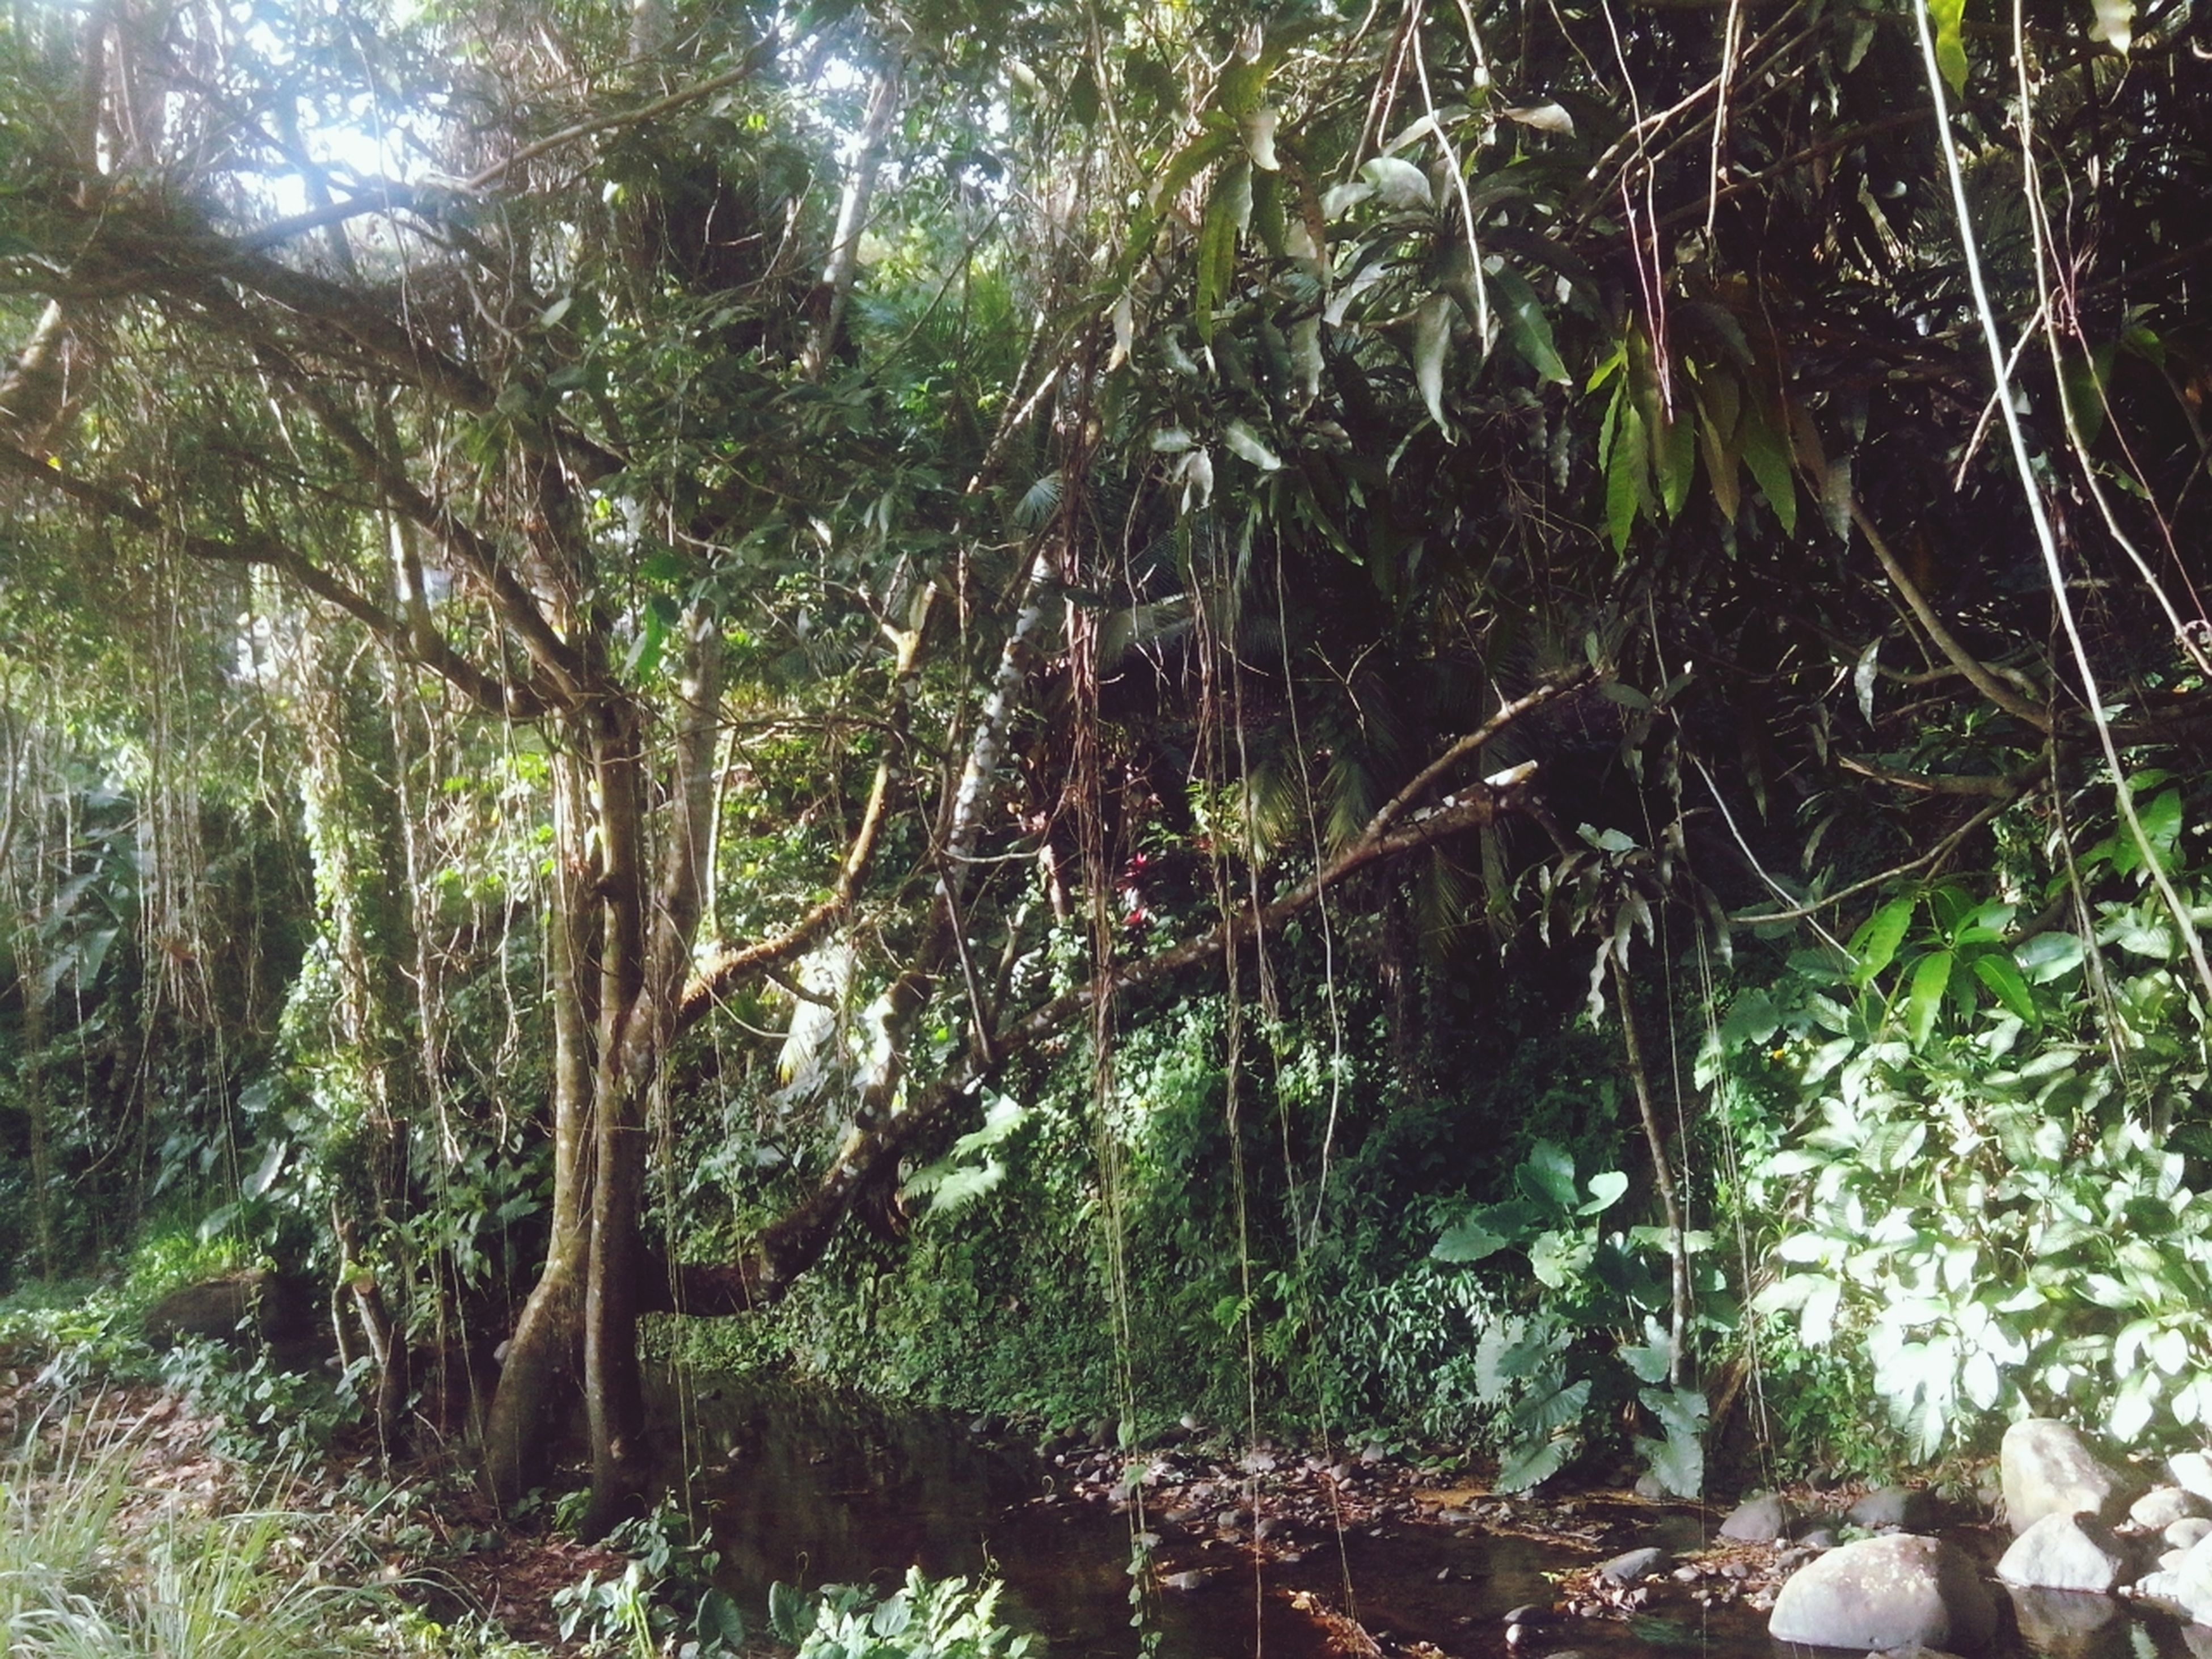 tree, growth, forest, tree trunk, branch, nature, tranquility, woodland, beauty in nature, plant, tranquil scene, green color, low angle view, day, outdoors, scenics, sunlight, no people, non-urban scene, growing